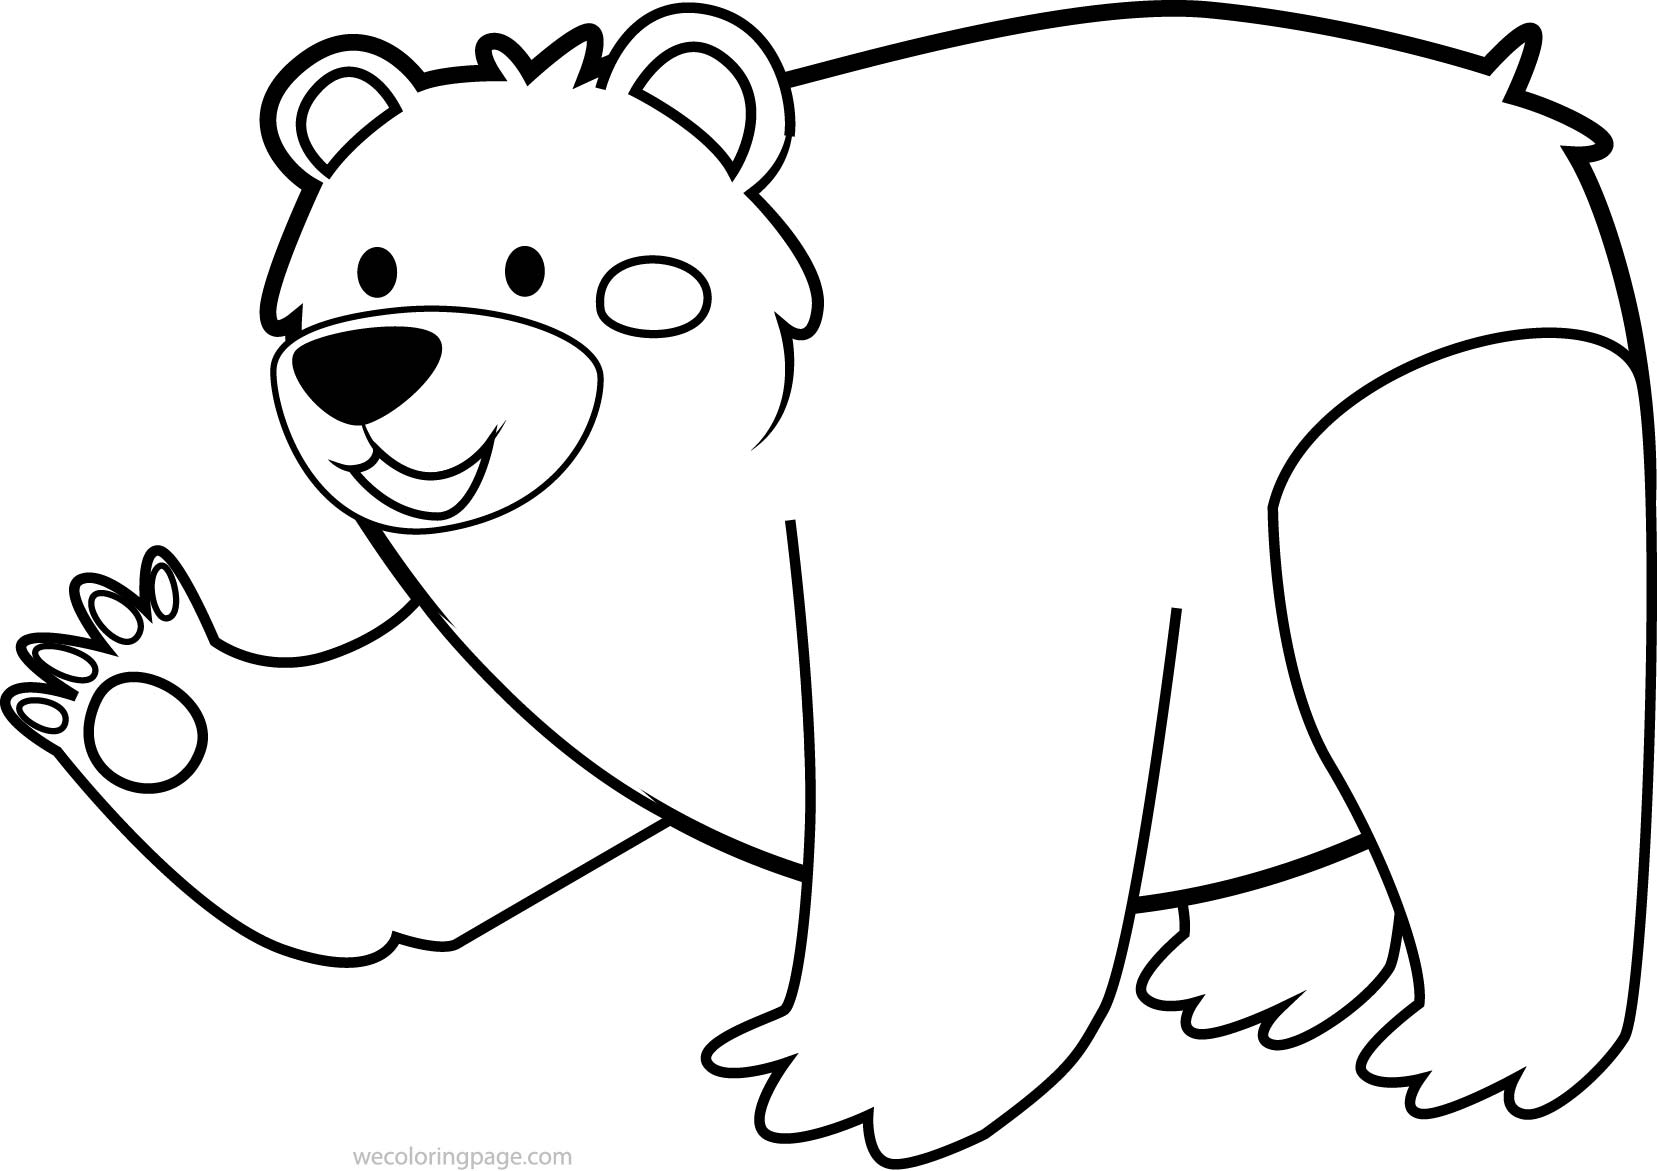 1657x1171 Free Colouring Pictures Of Bears Bear Coloring